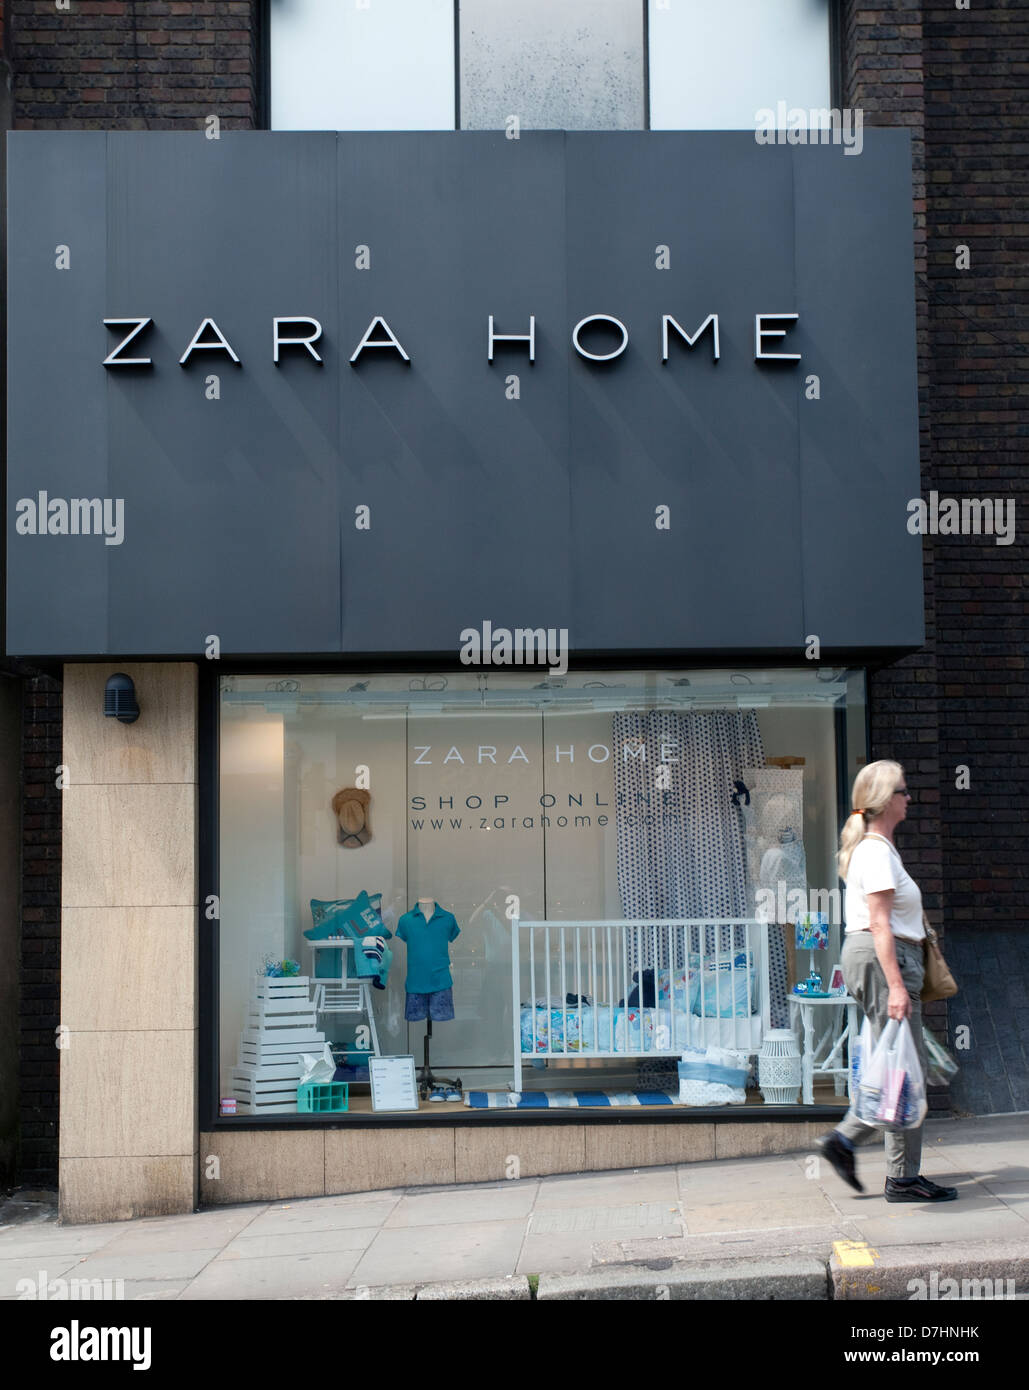 Branch Of Zara Home Furnishings Store In Hampstead London Stock Photo Royalty Free Image